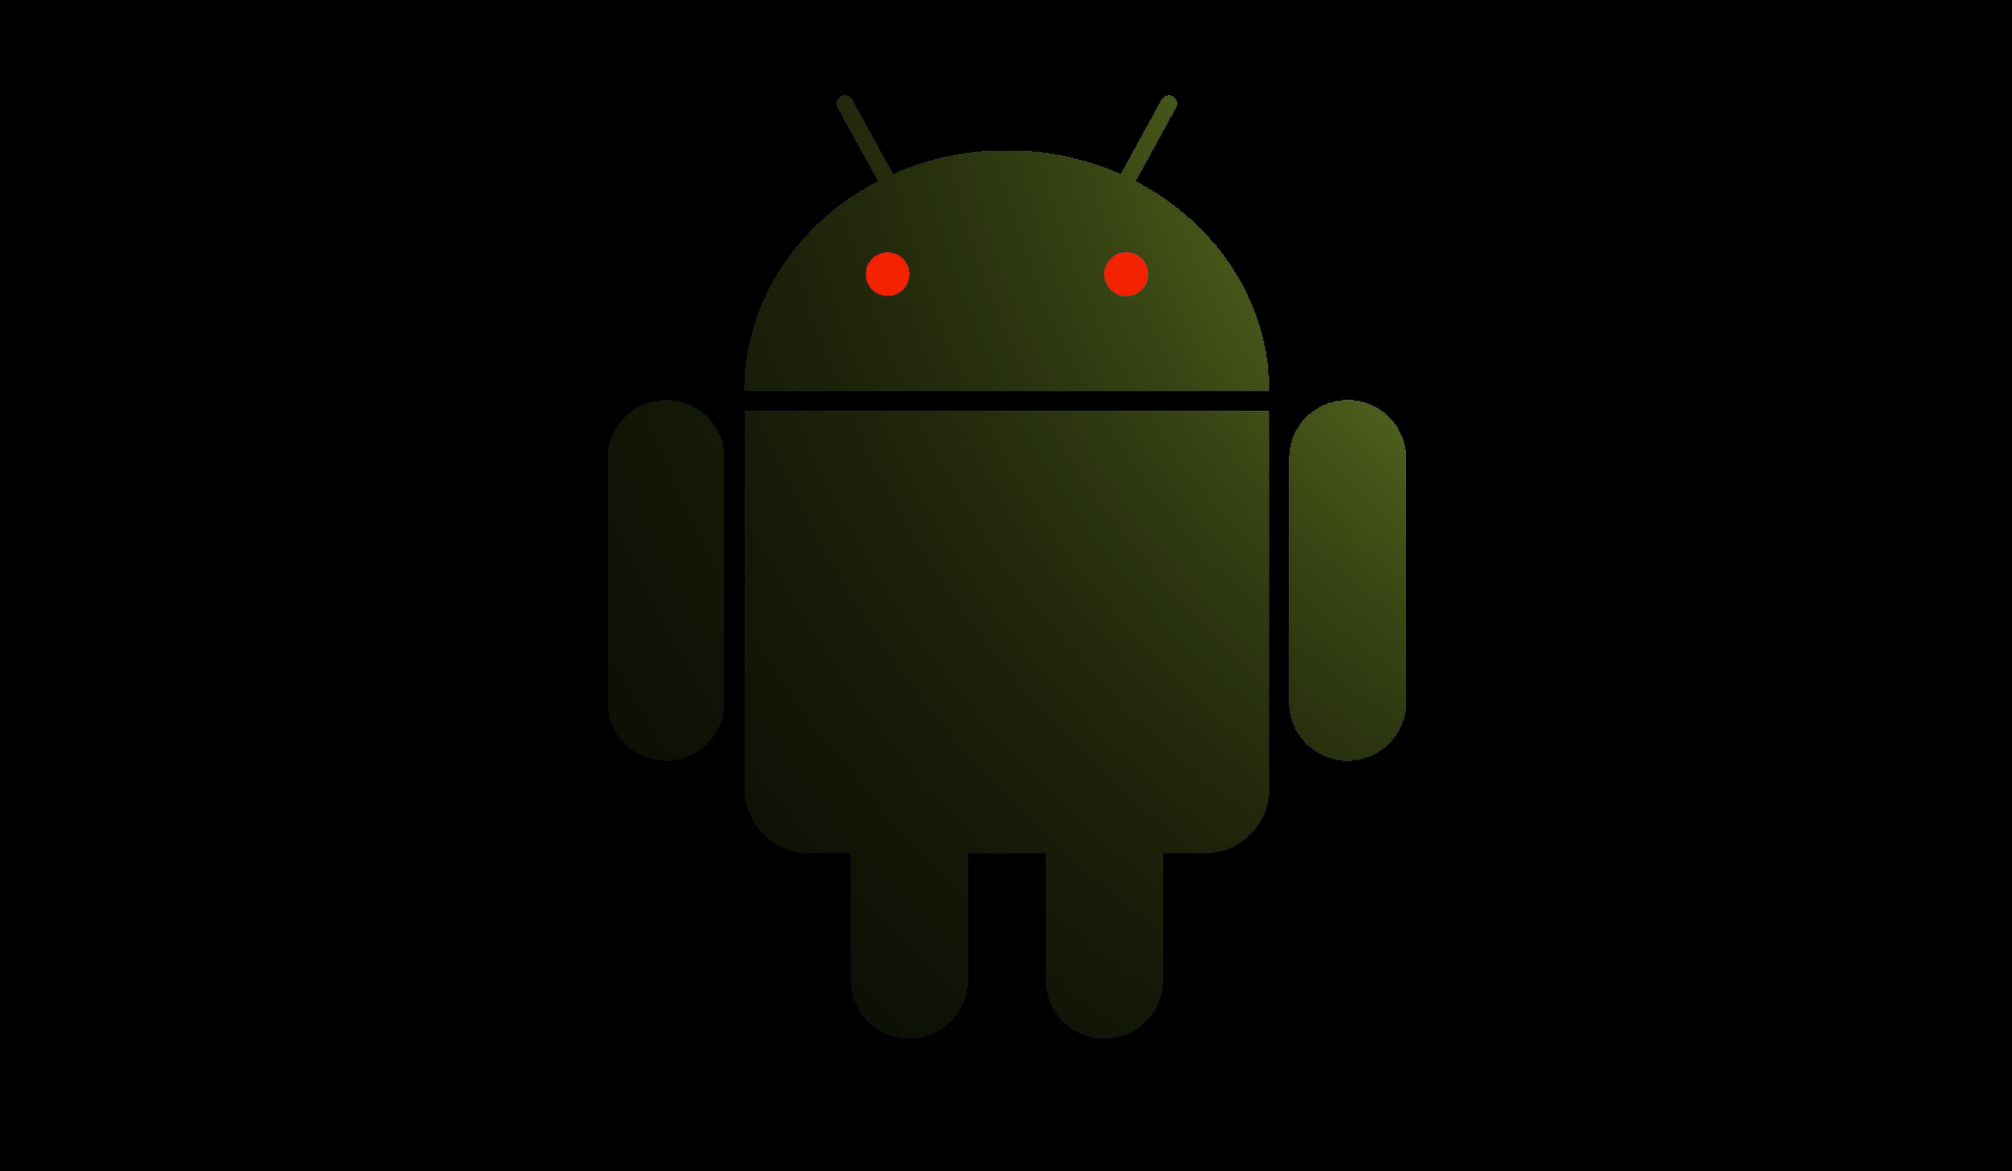 Parody of malware in Android